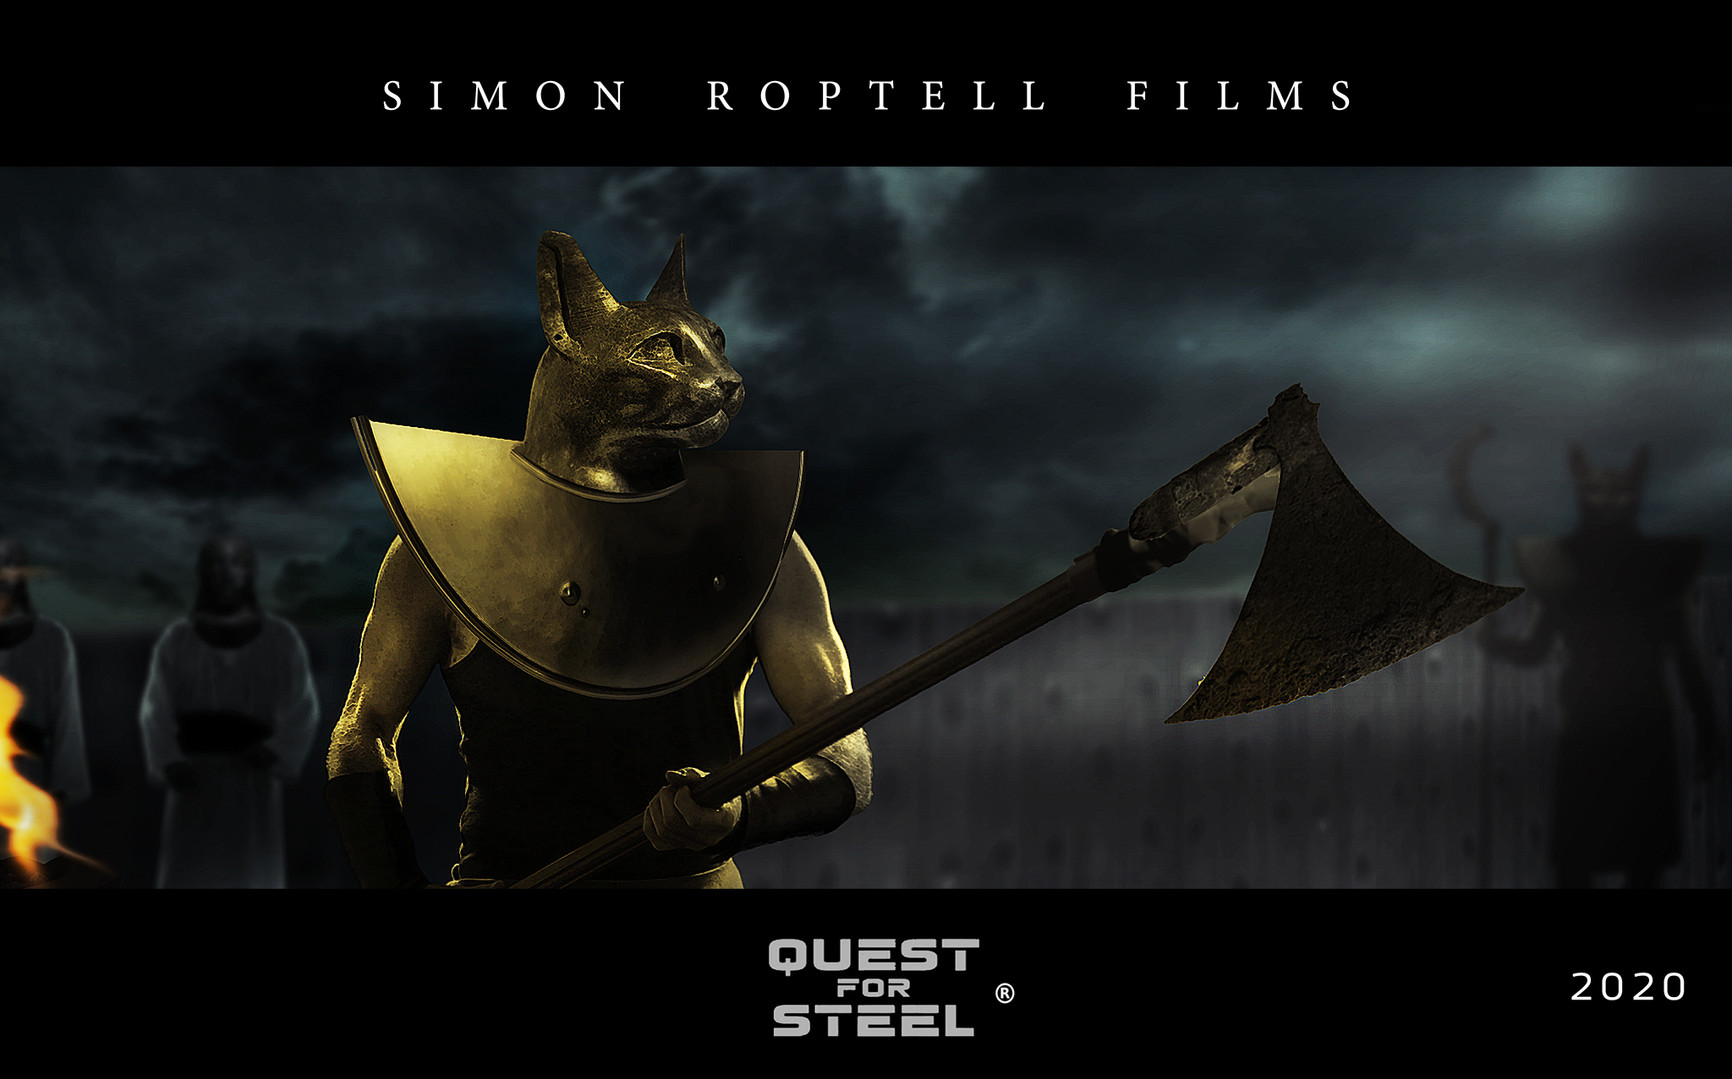 Quest for Steel. Cat movie. Egyptian myt